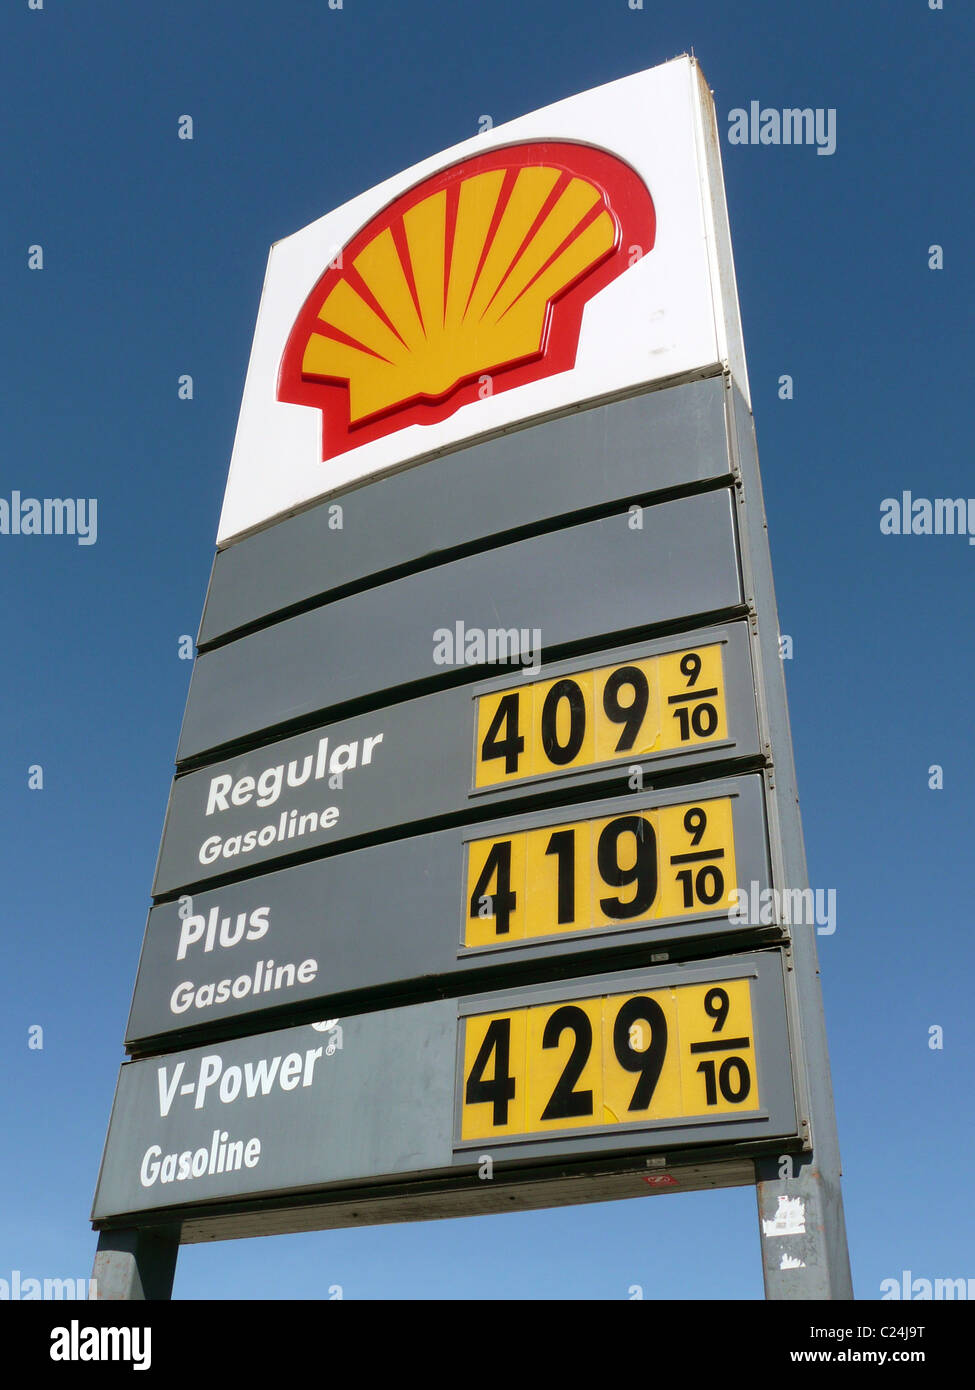 Shell Gas Station Prices >> Shell gas station sign showing gasoline prices over $4 per ...